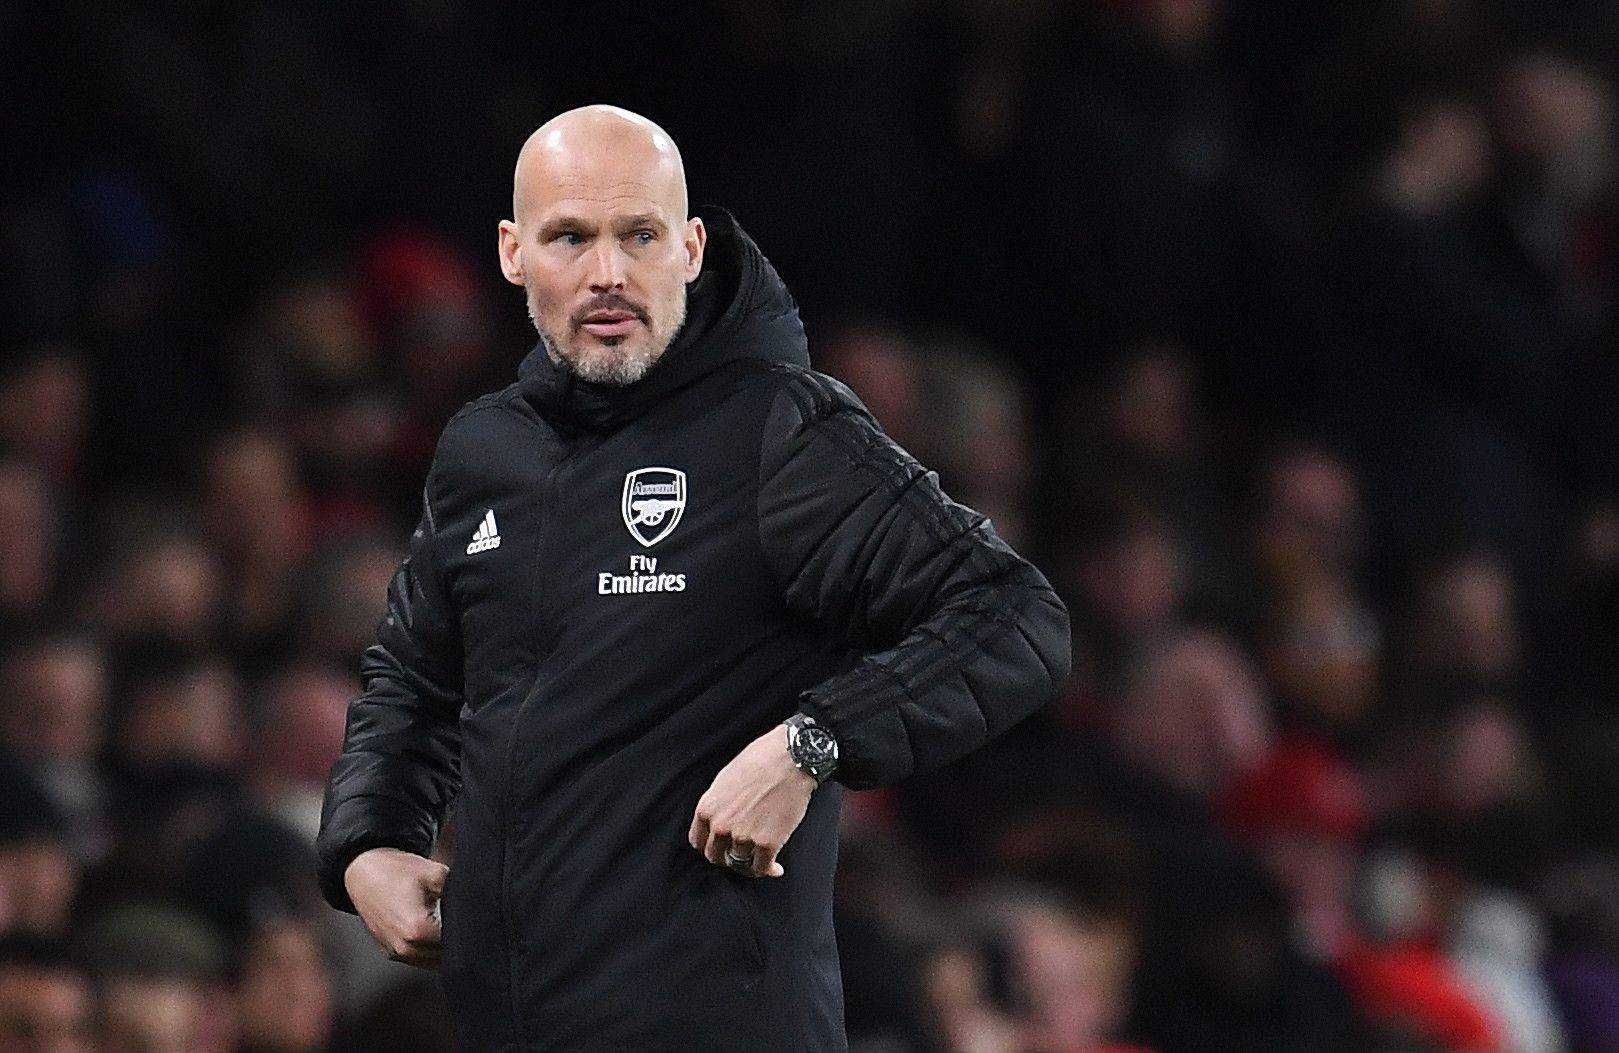 West Ham Vs Arsenal Live Stream Tv Channel Kick Off Time And Team